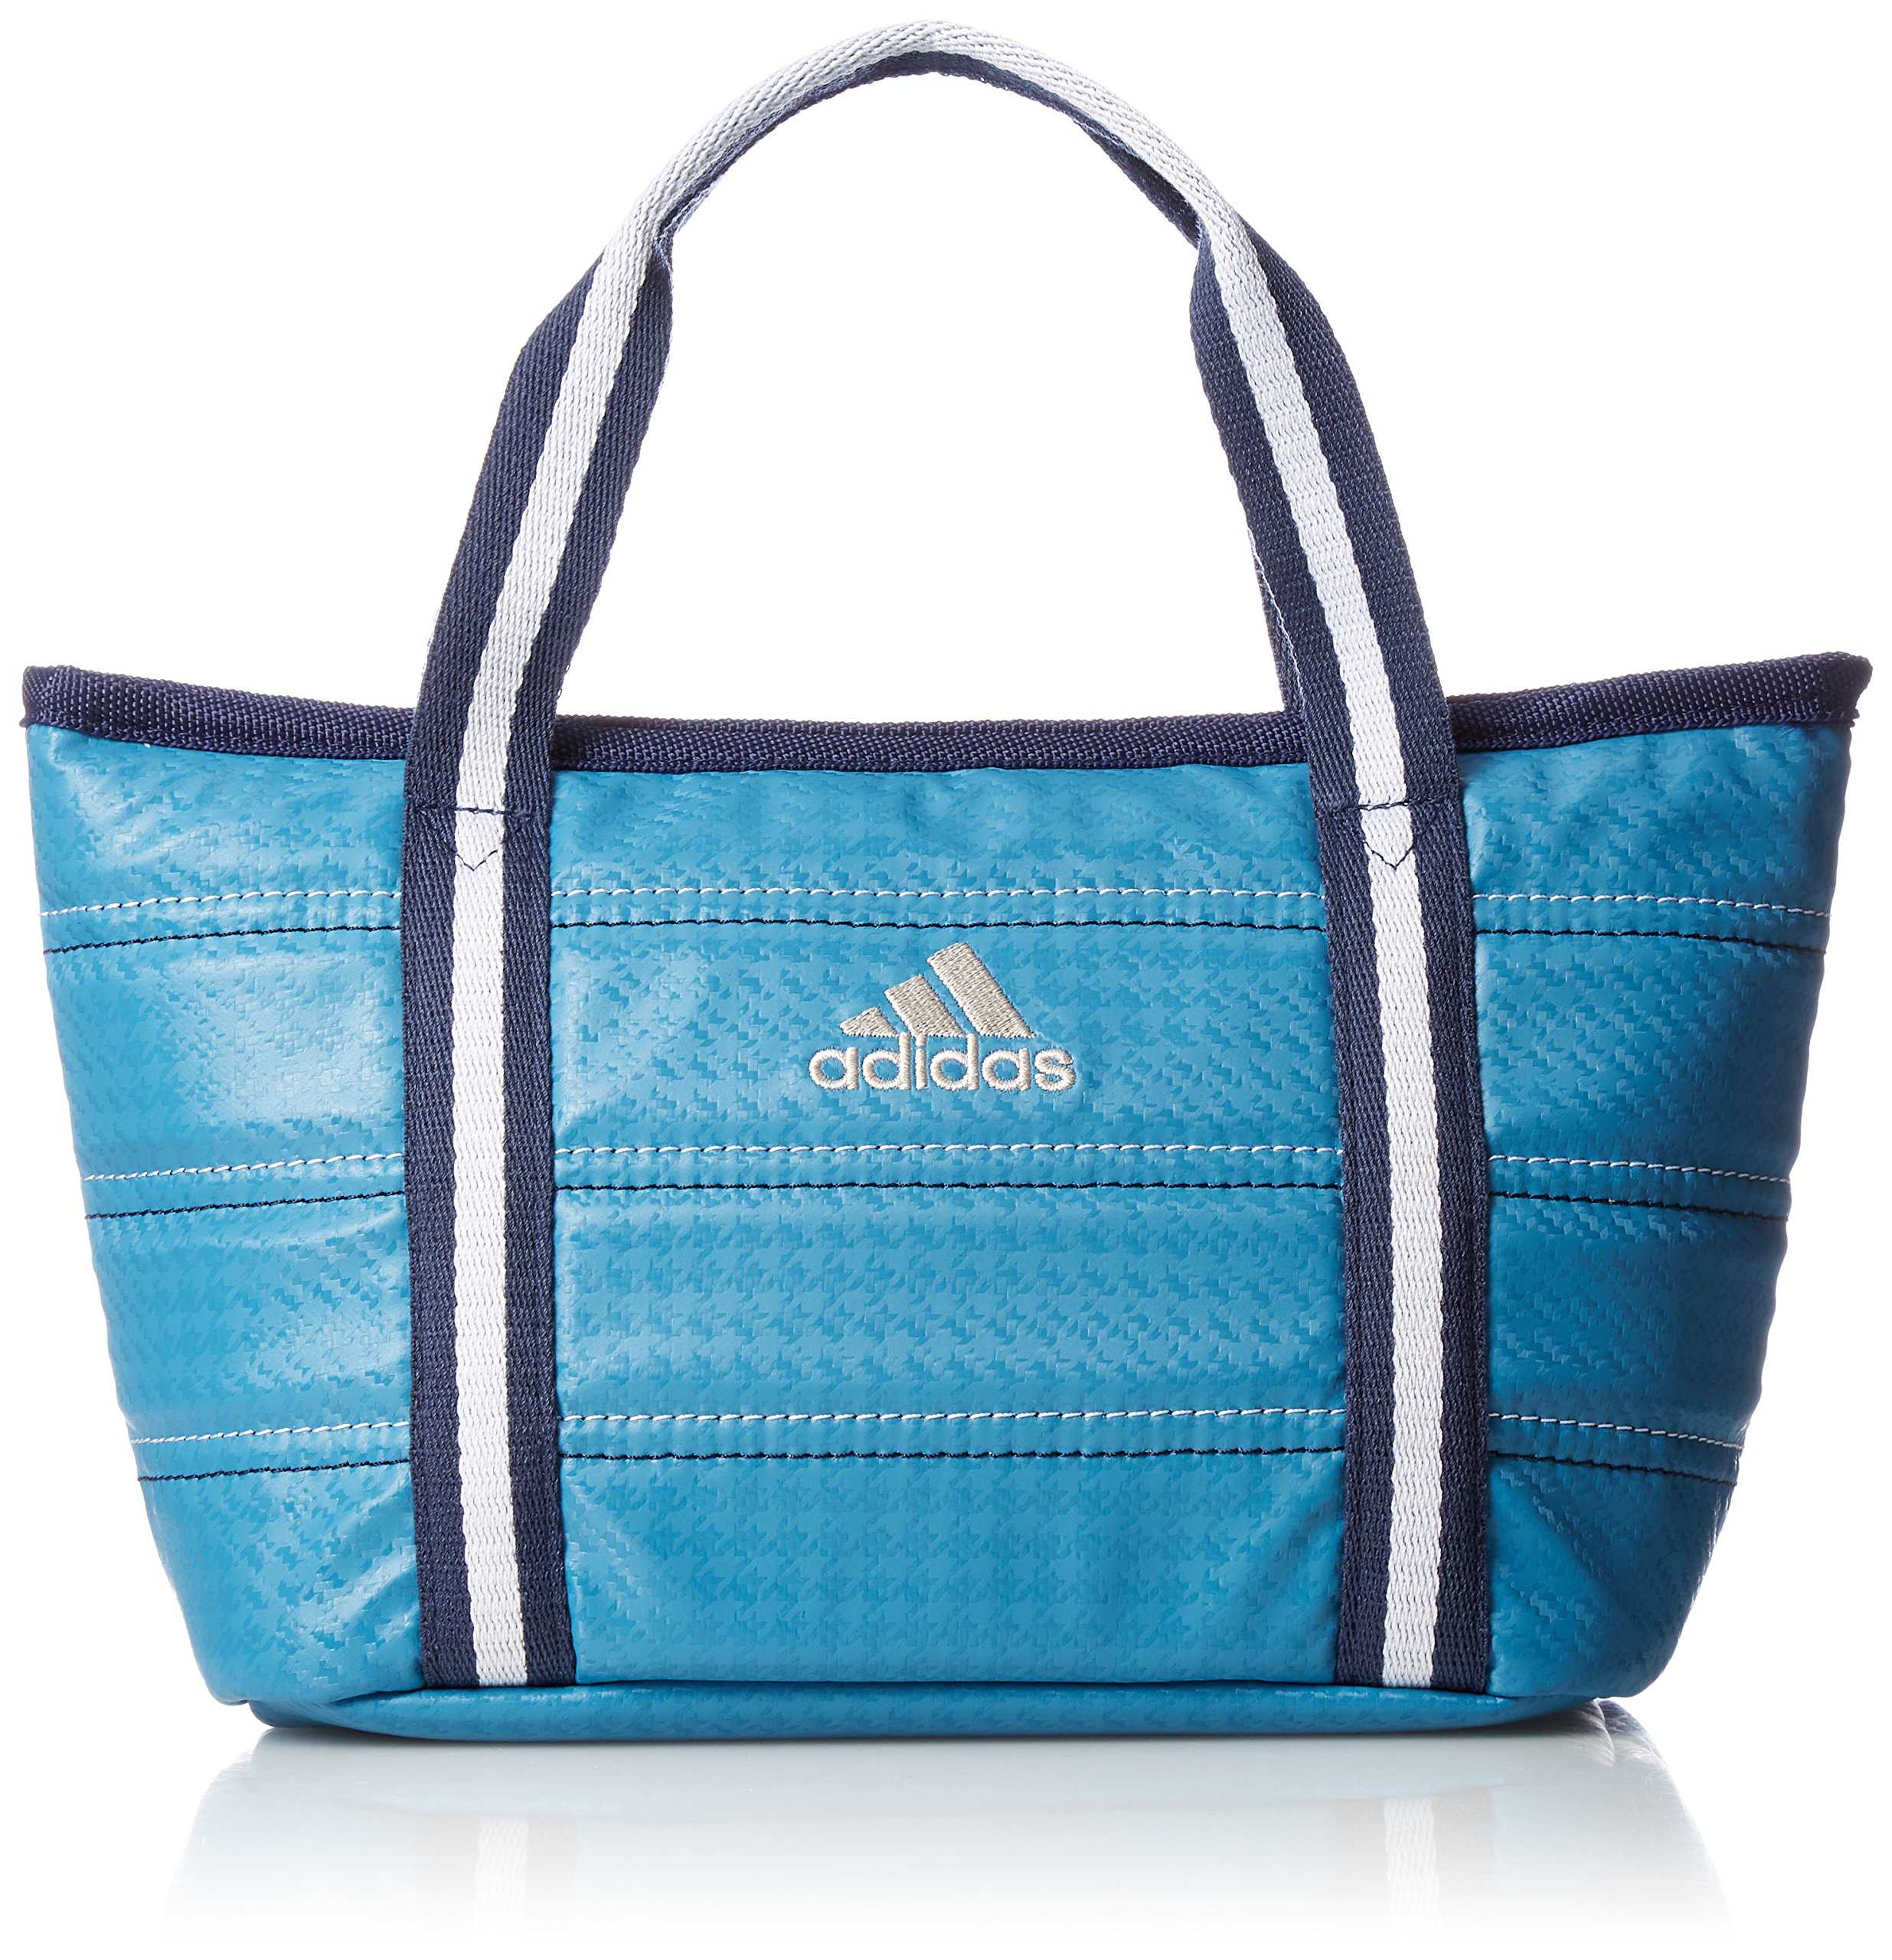 [Adidas Golf] Round Tote Bag L23 × W18 × H13cm AWT 28 A 92427 Tactile Steel